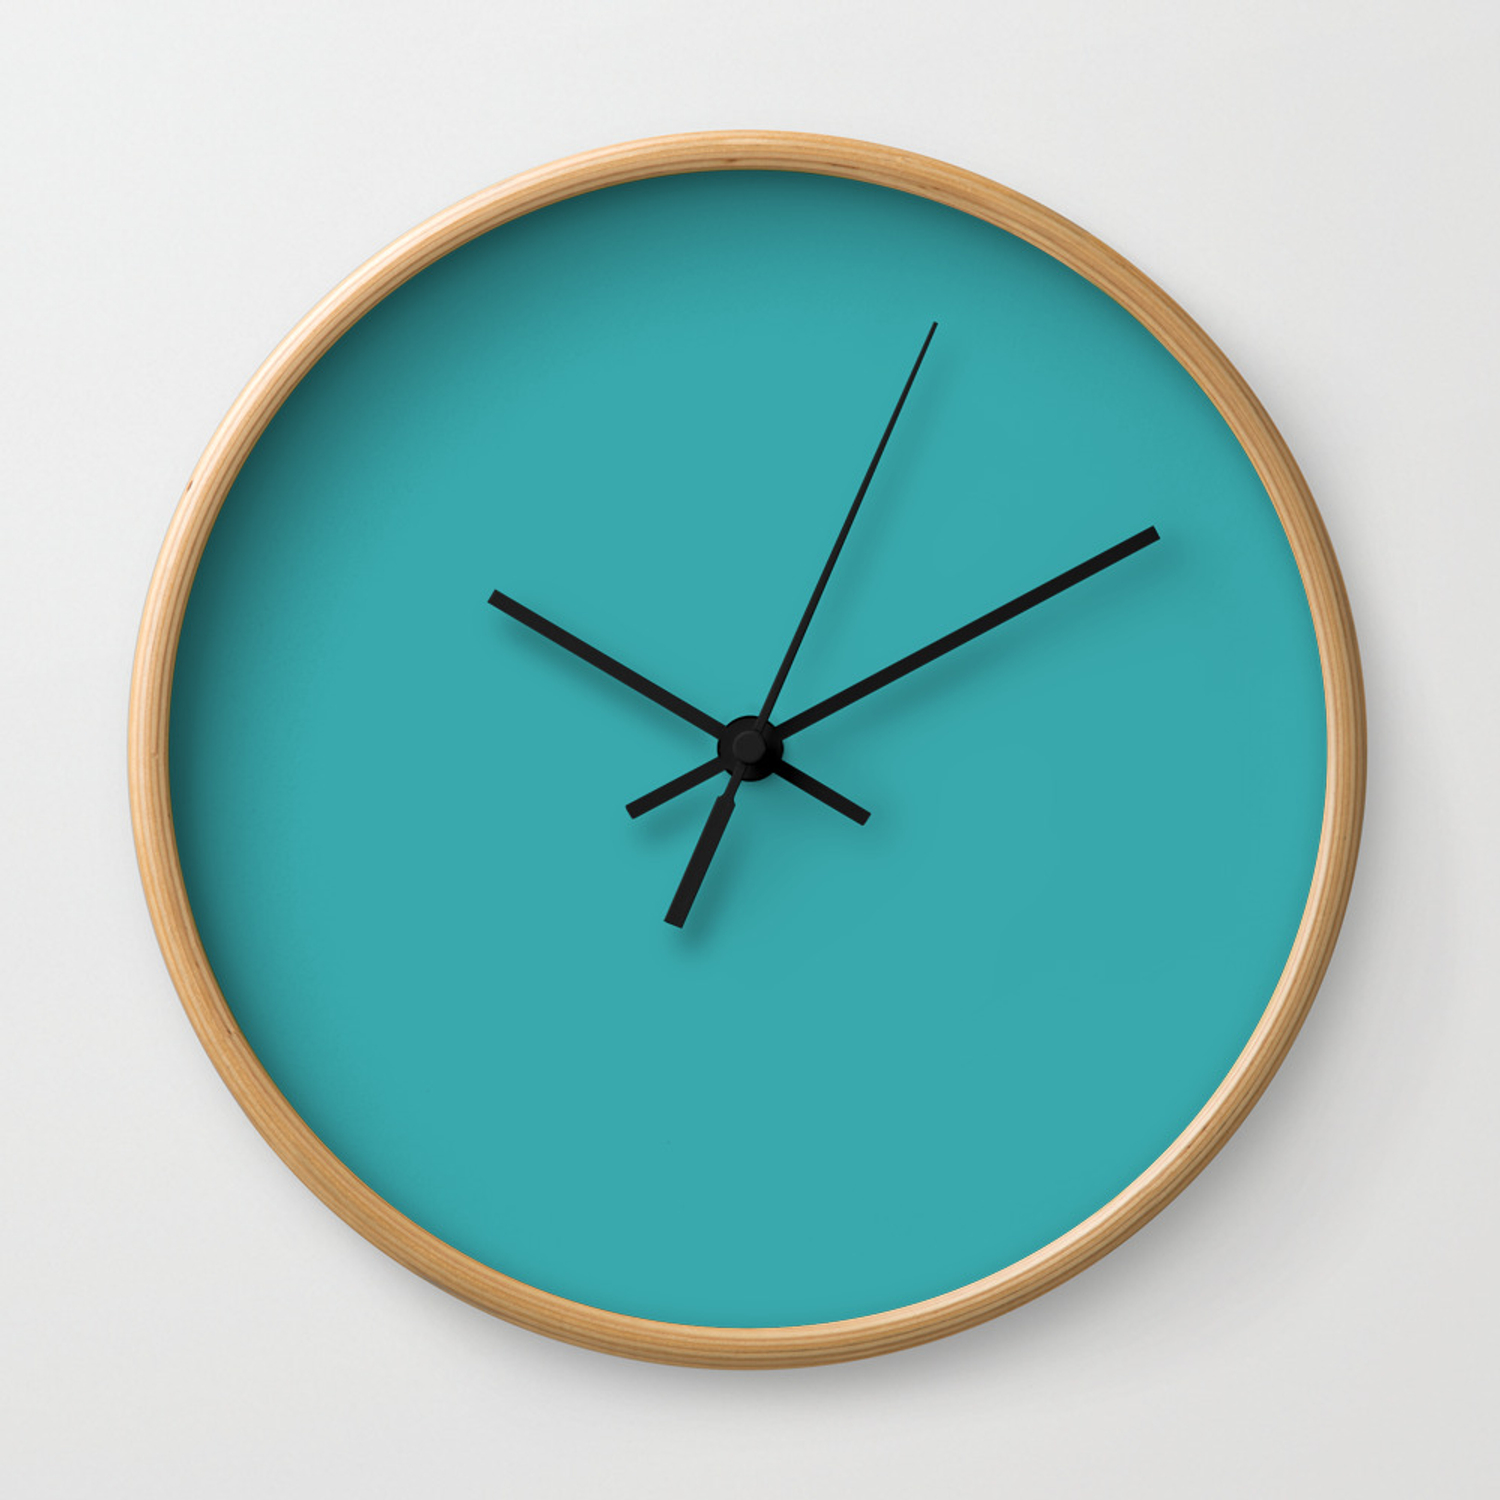 Aqua Teal Turquoise Solid Color Pairs With Sherwin Williams 2020 Trending Aquarium Sw6767 Wall Clock